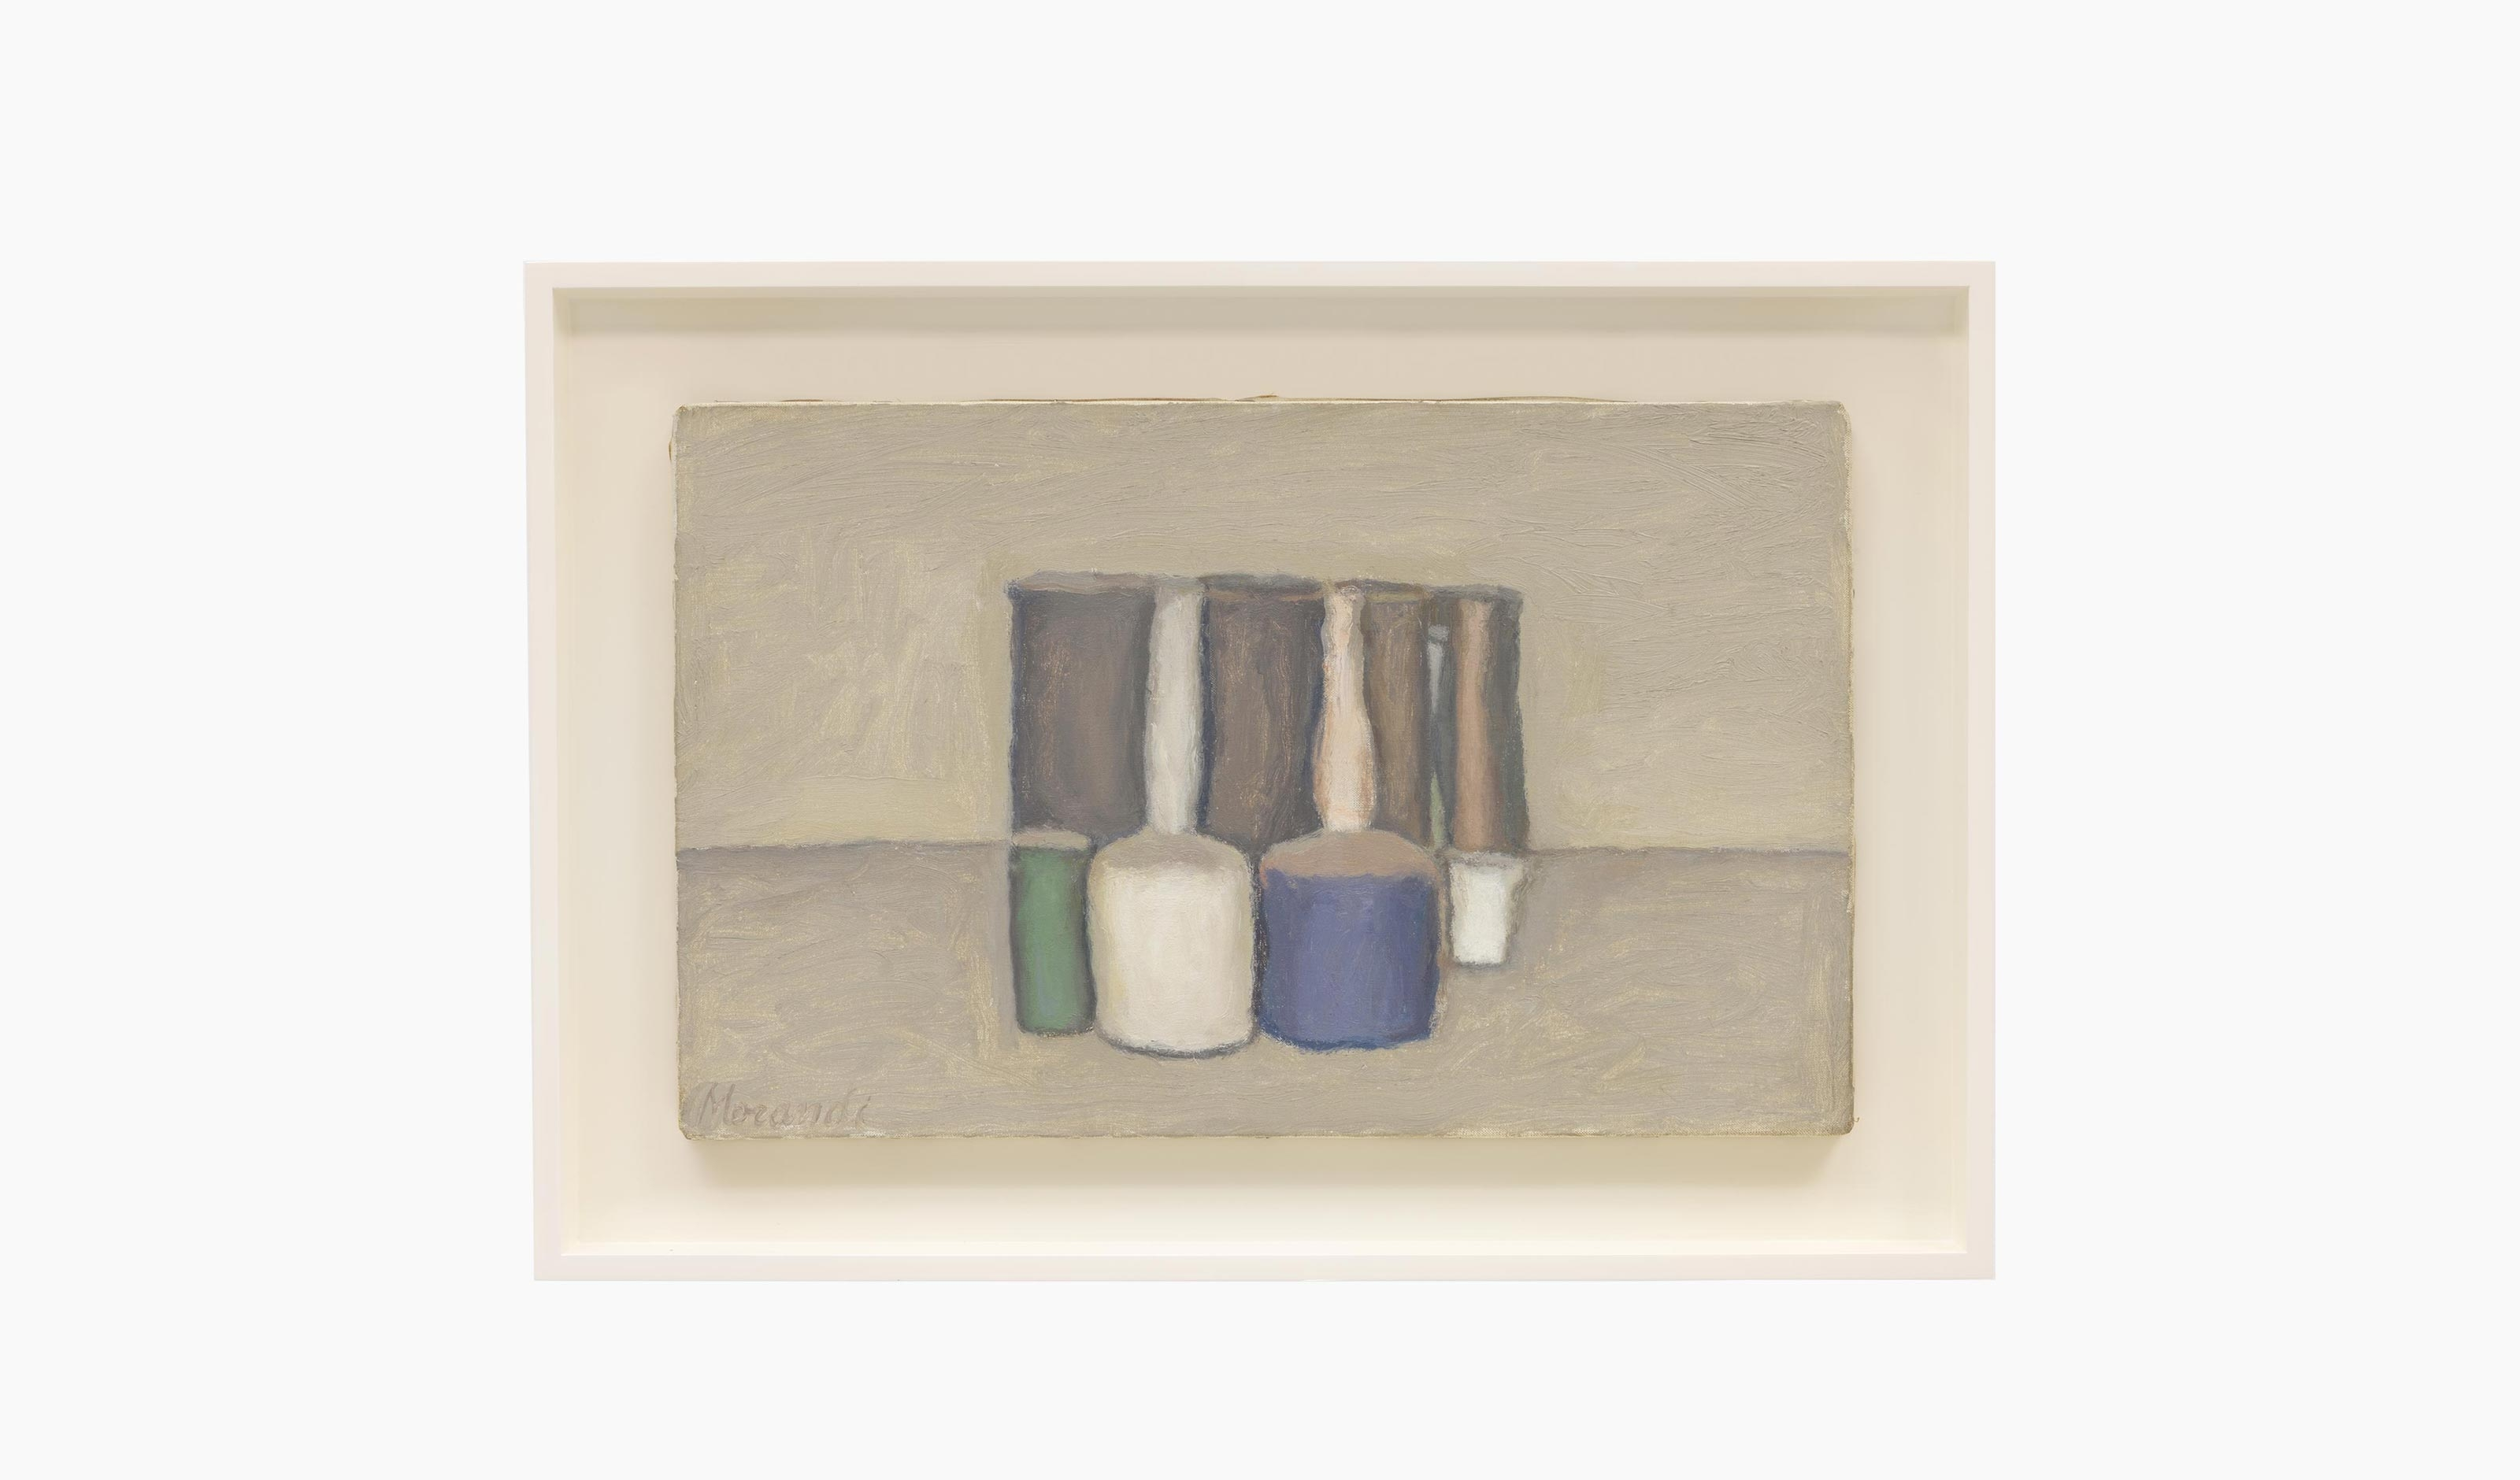 A painting by Giorgio Morandi, titled Natura morta (Still Life), dated 1959.